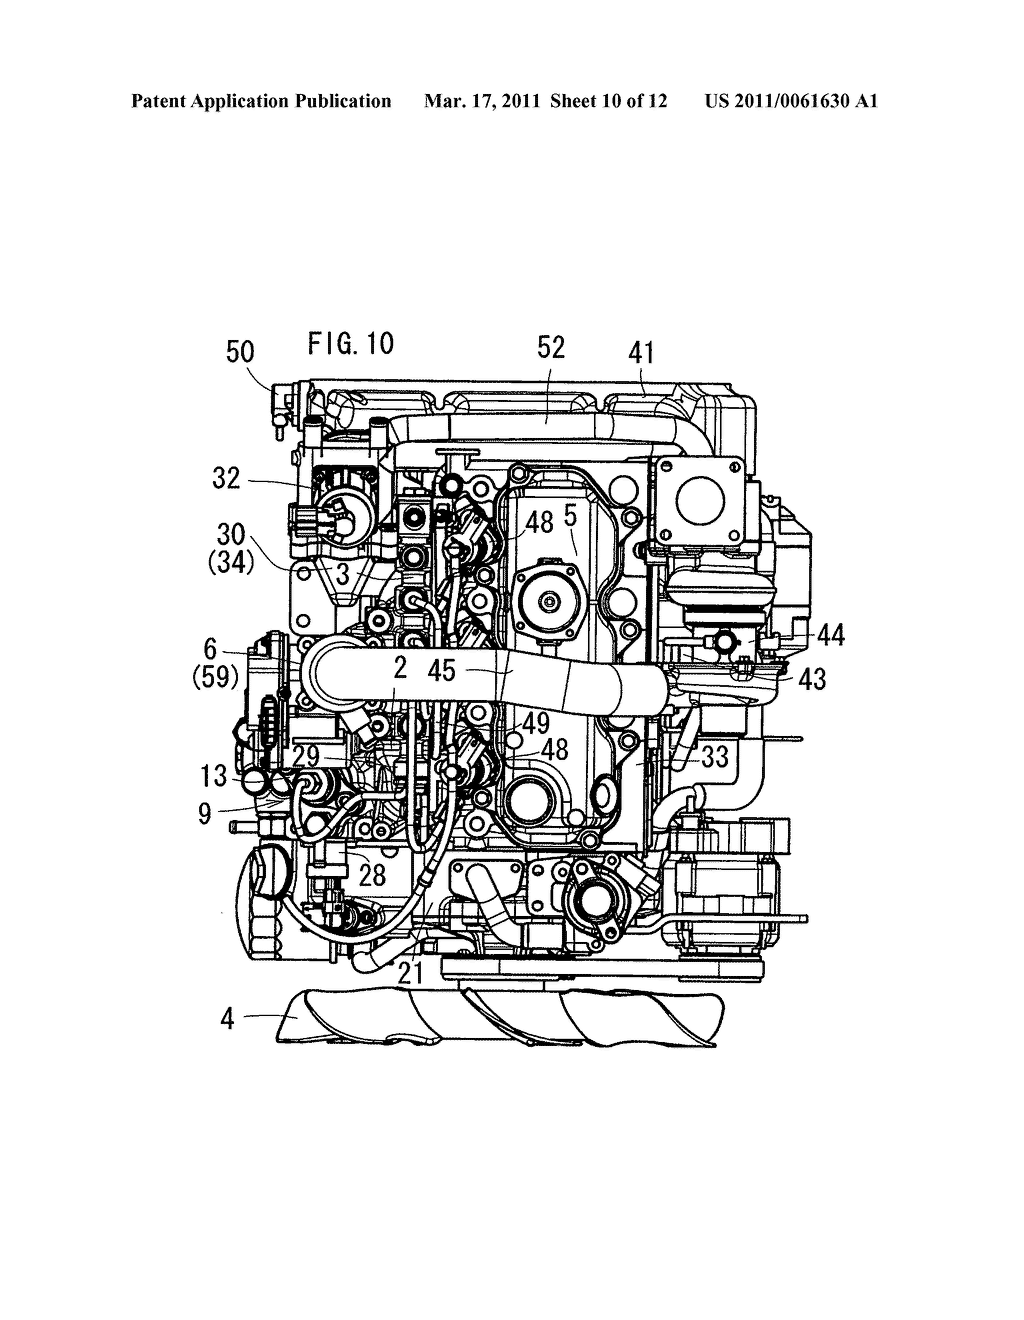 2012 Armada Engine Diagram Wiring Library F150 Trailer Plug